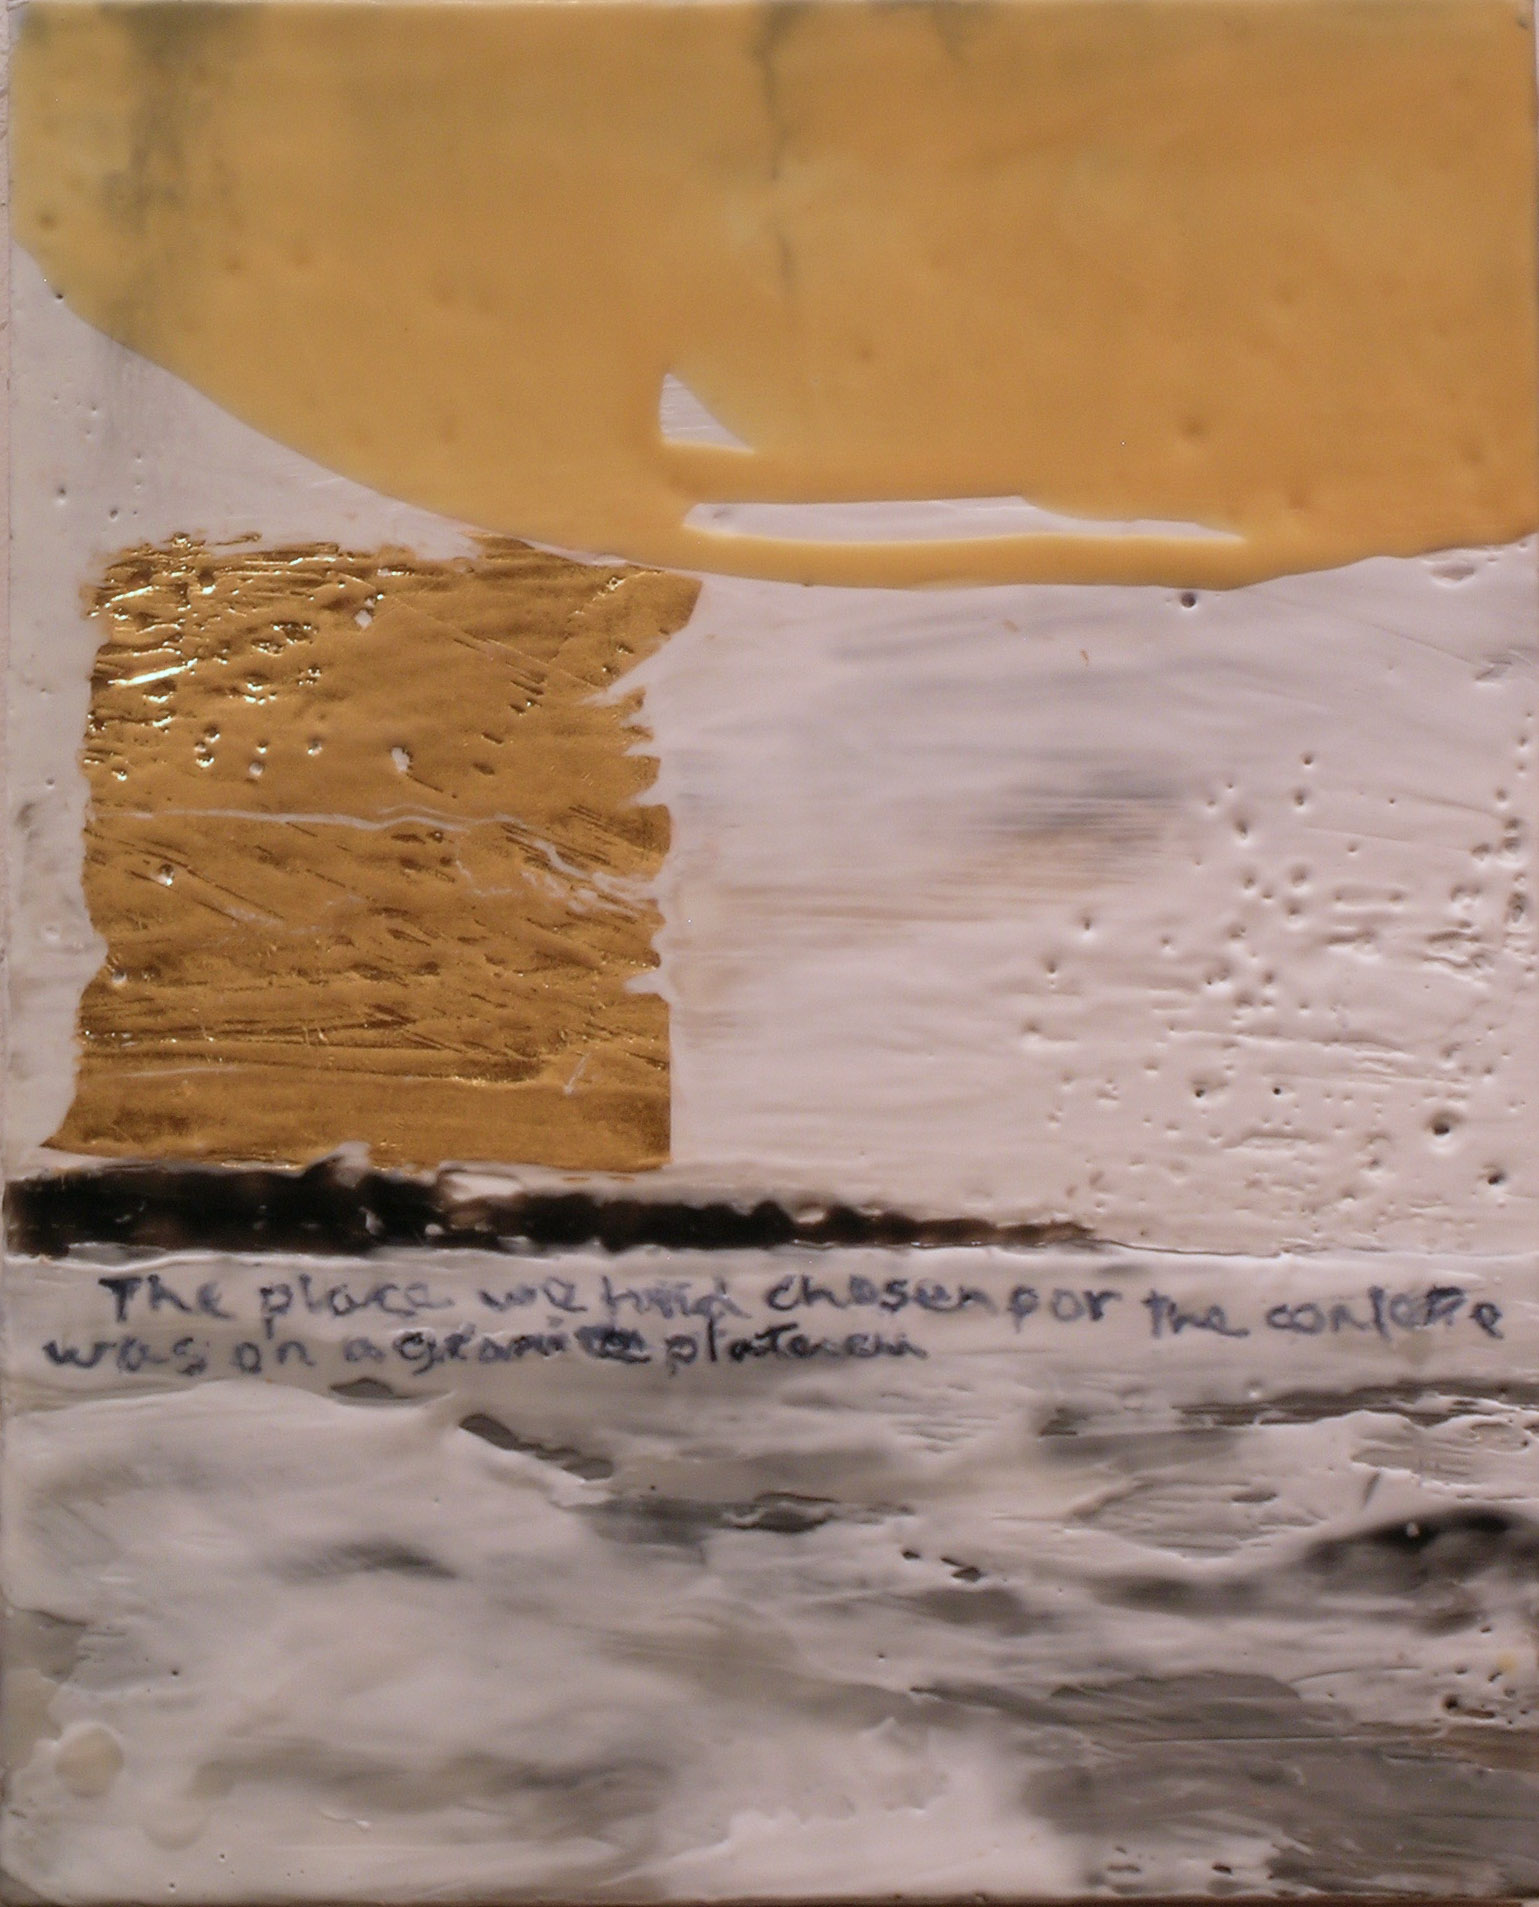 TS-073, The place we had chosen for the conference was on a granite plateau, 2016, mixed media, encaustic, 10x8.jpg